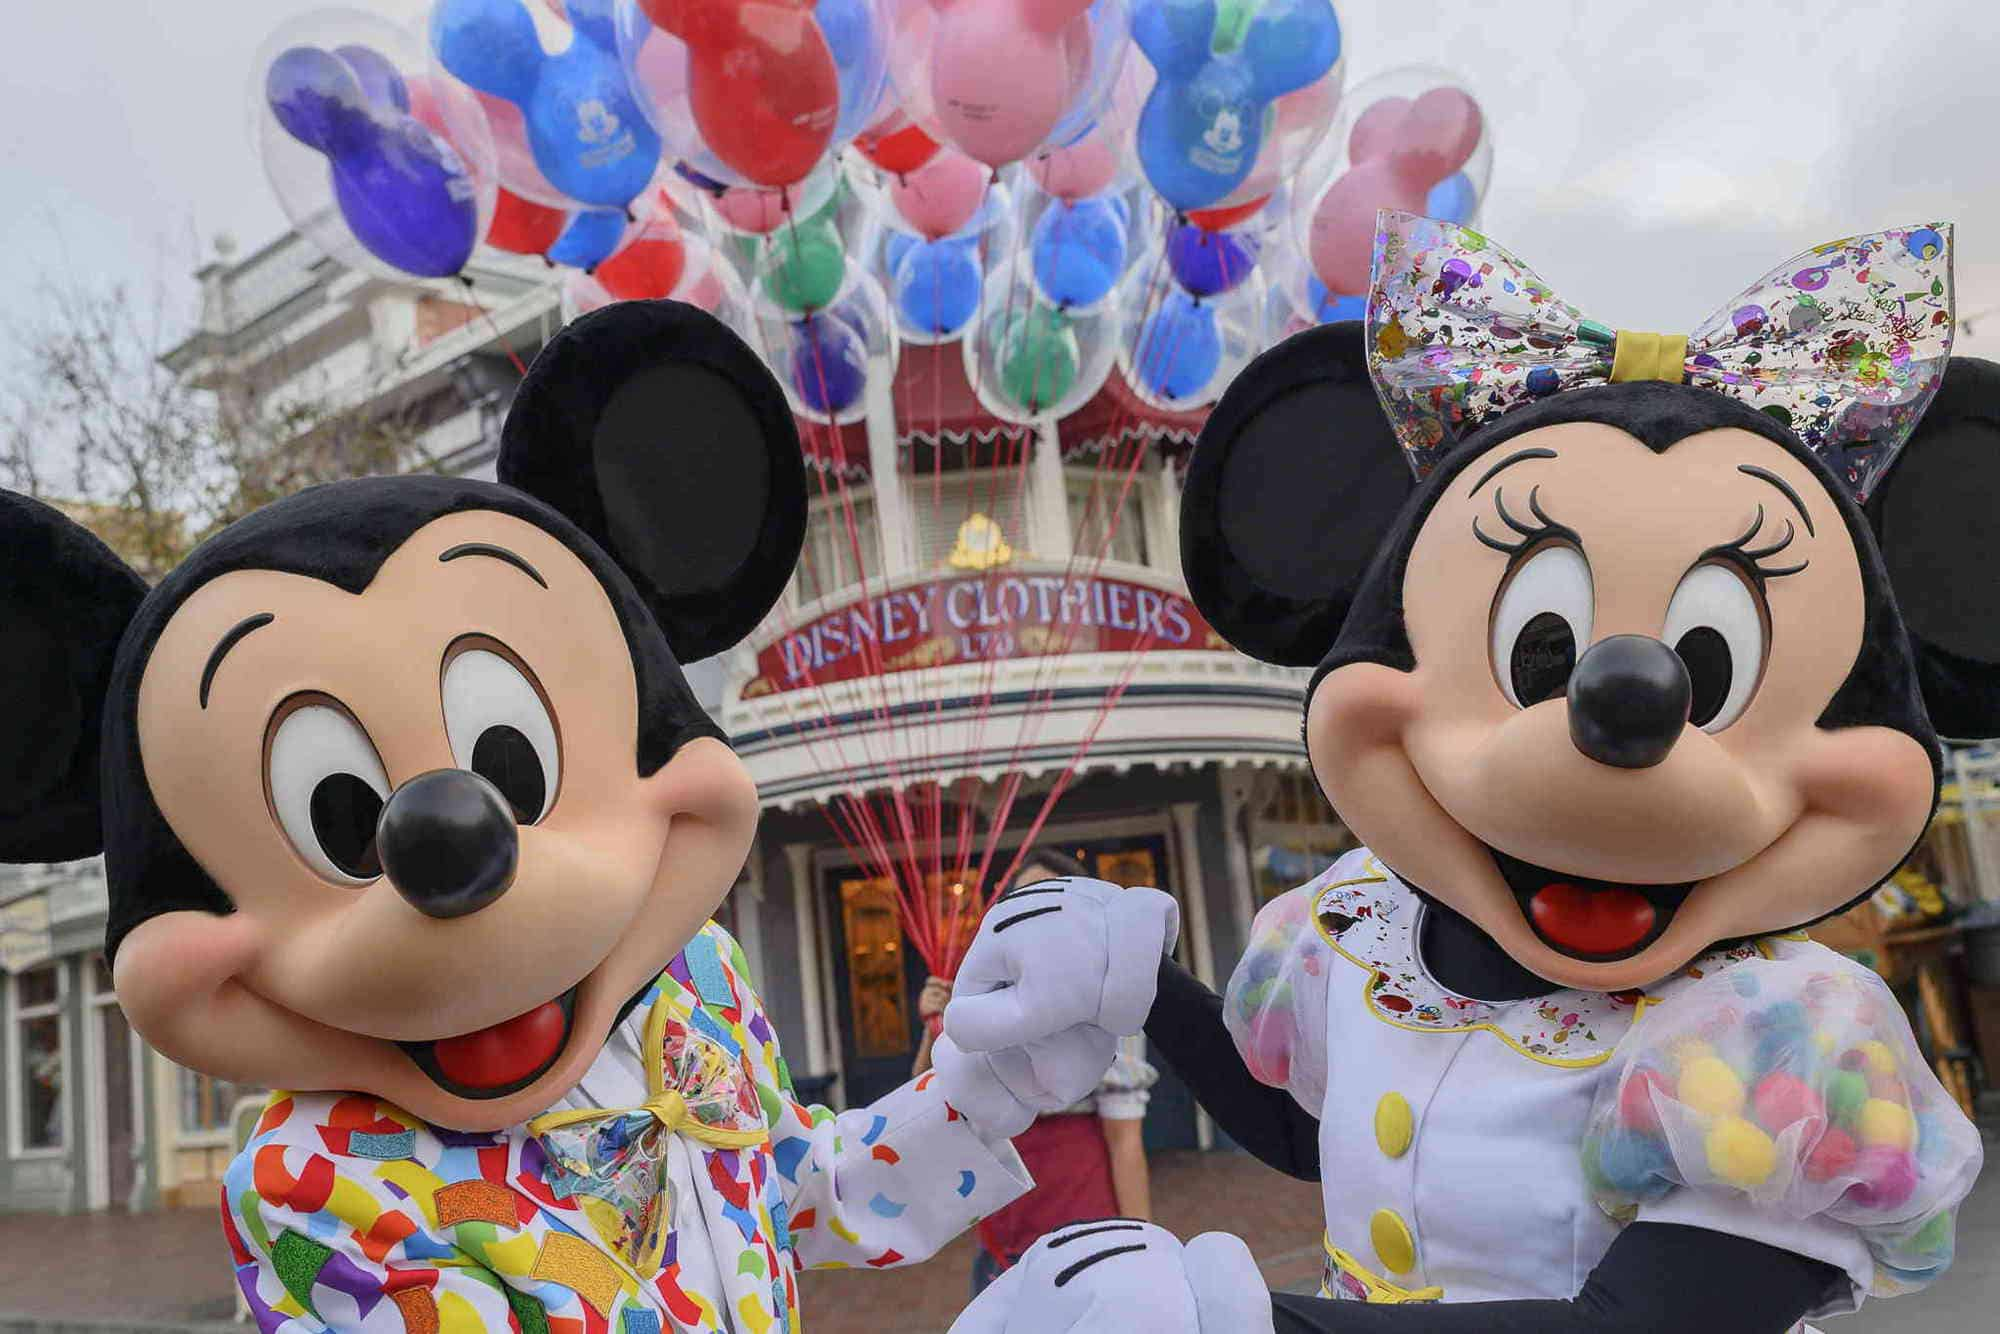 Things to get excited about at Disneyland Resort in 2019